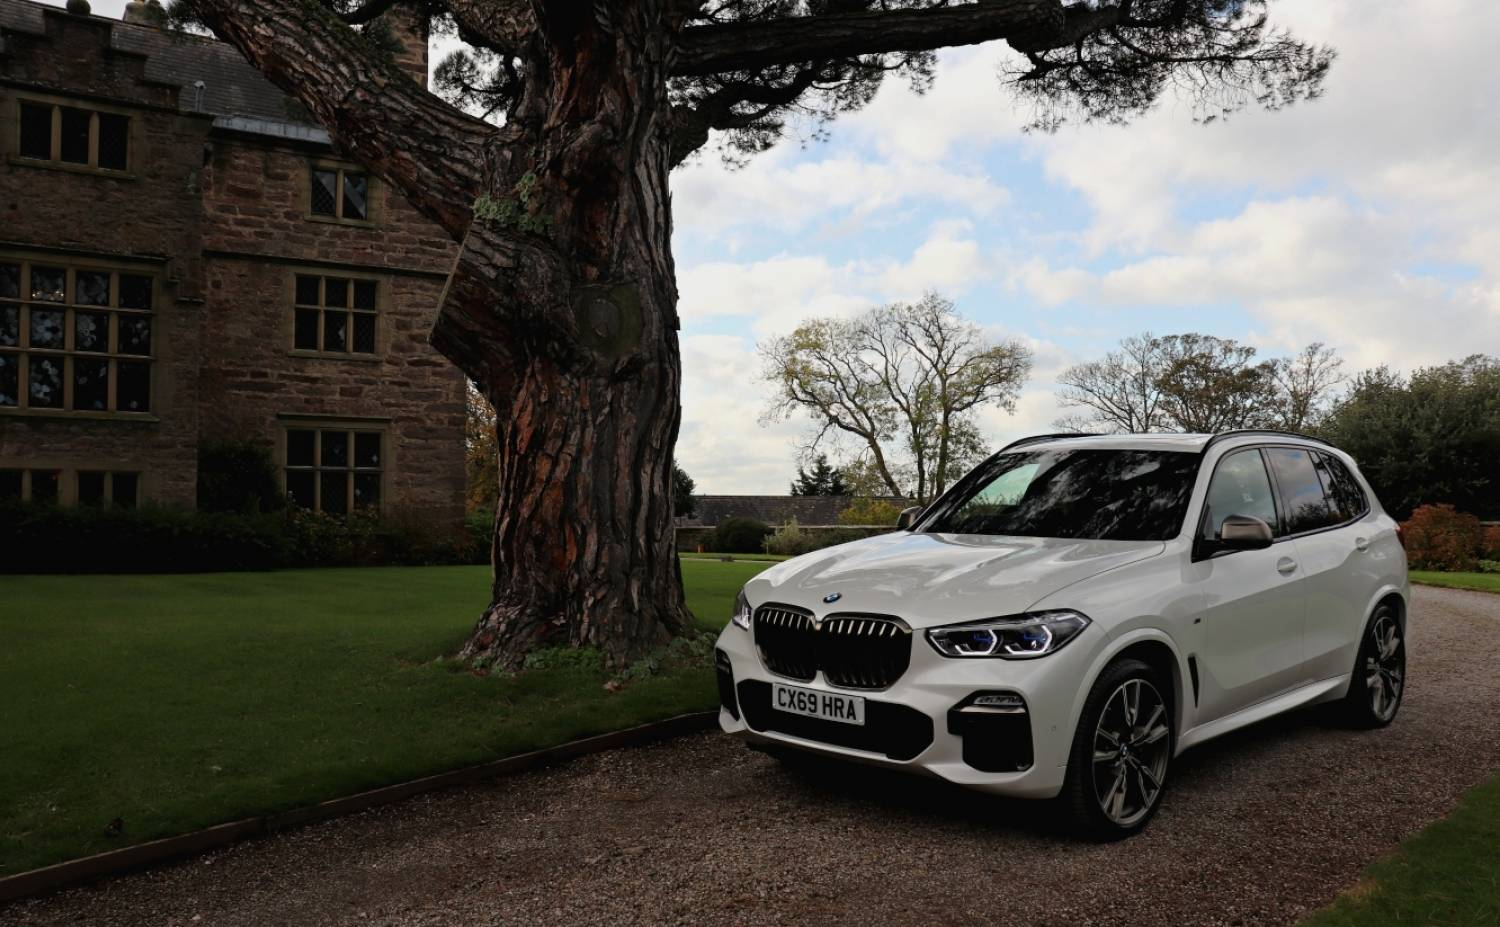 BMW X5 M50d Outside Bodysgallen Hall